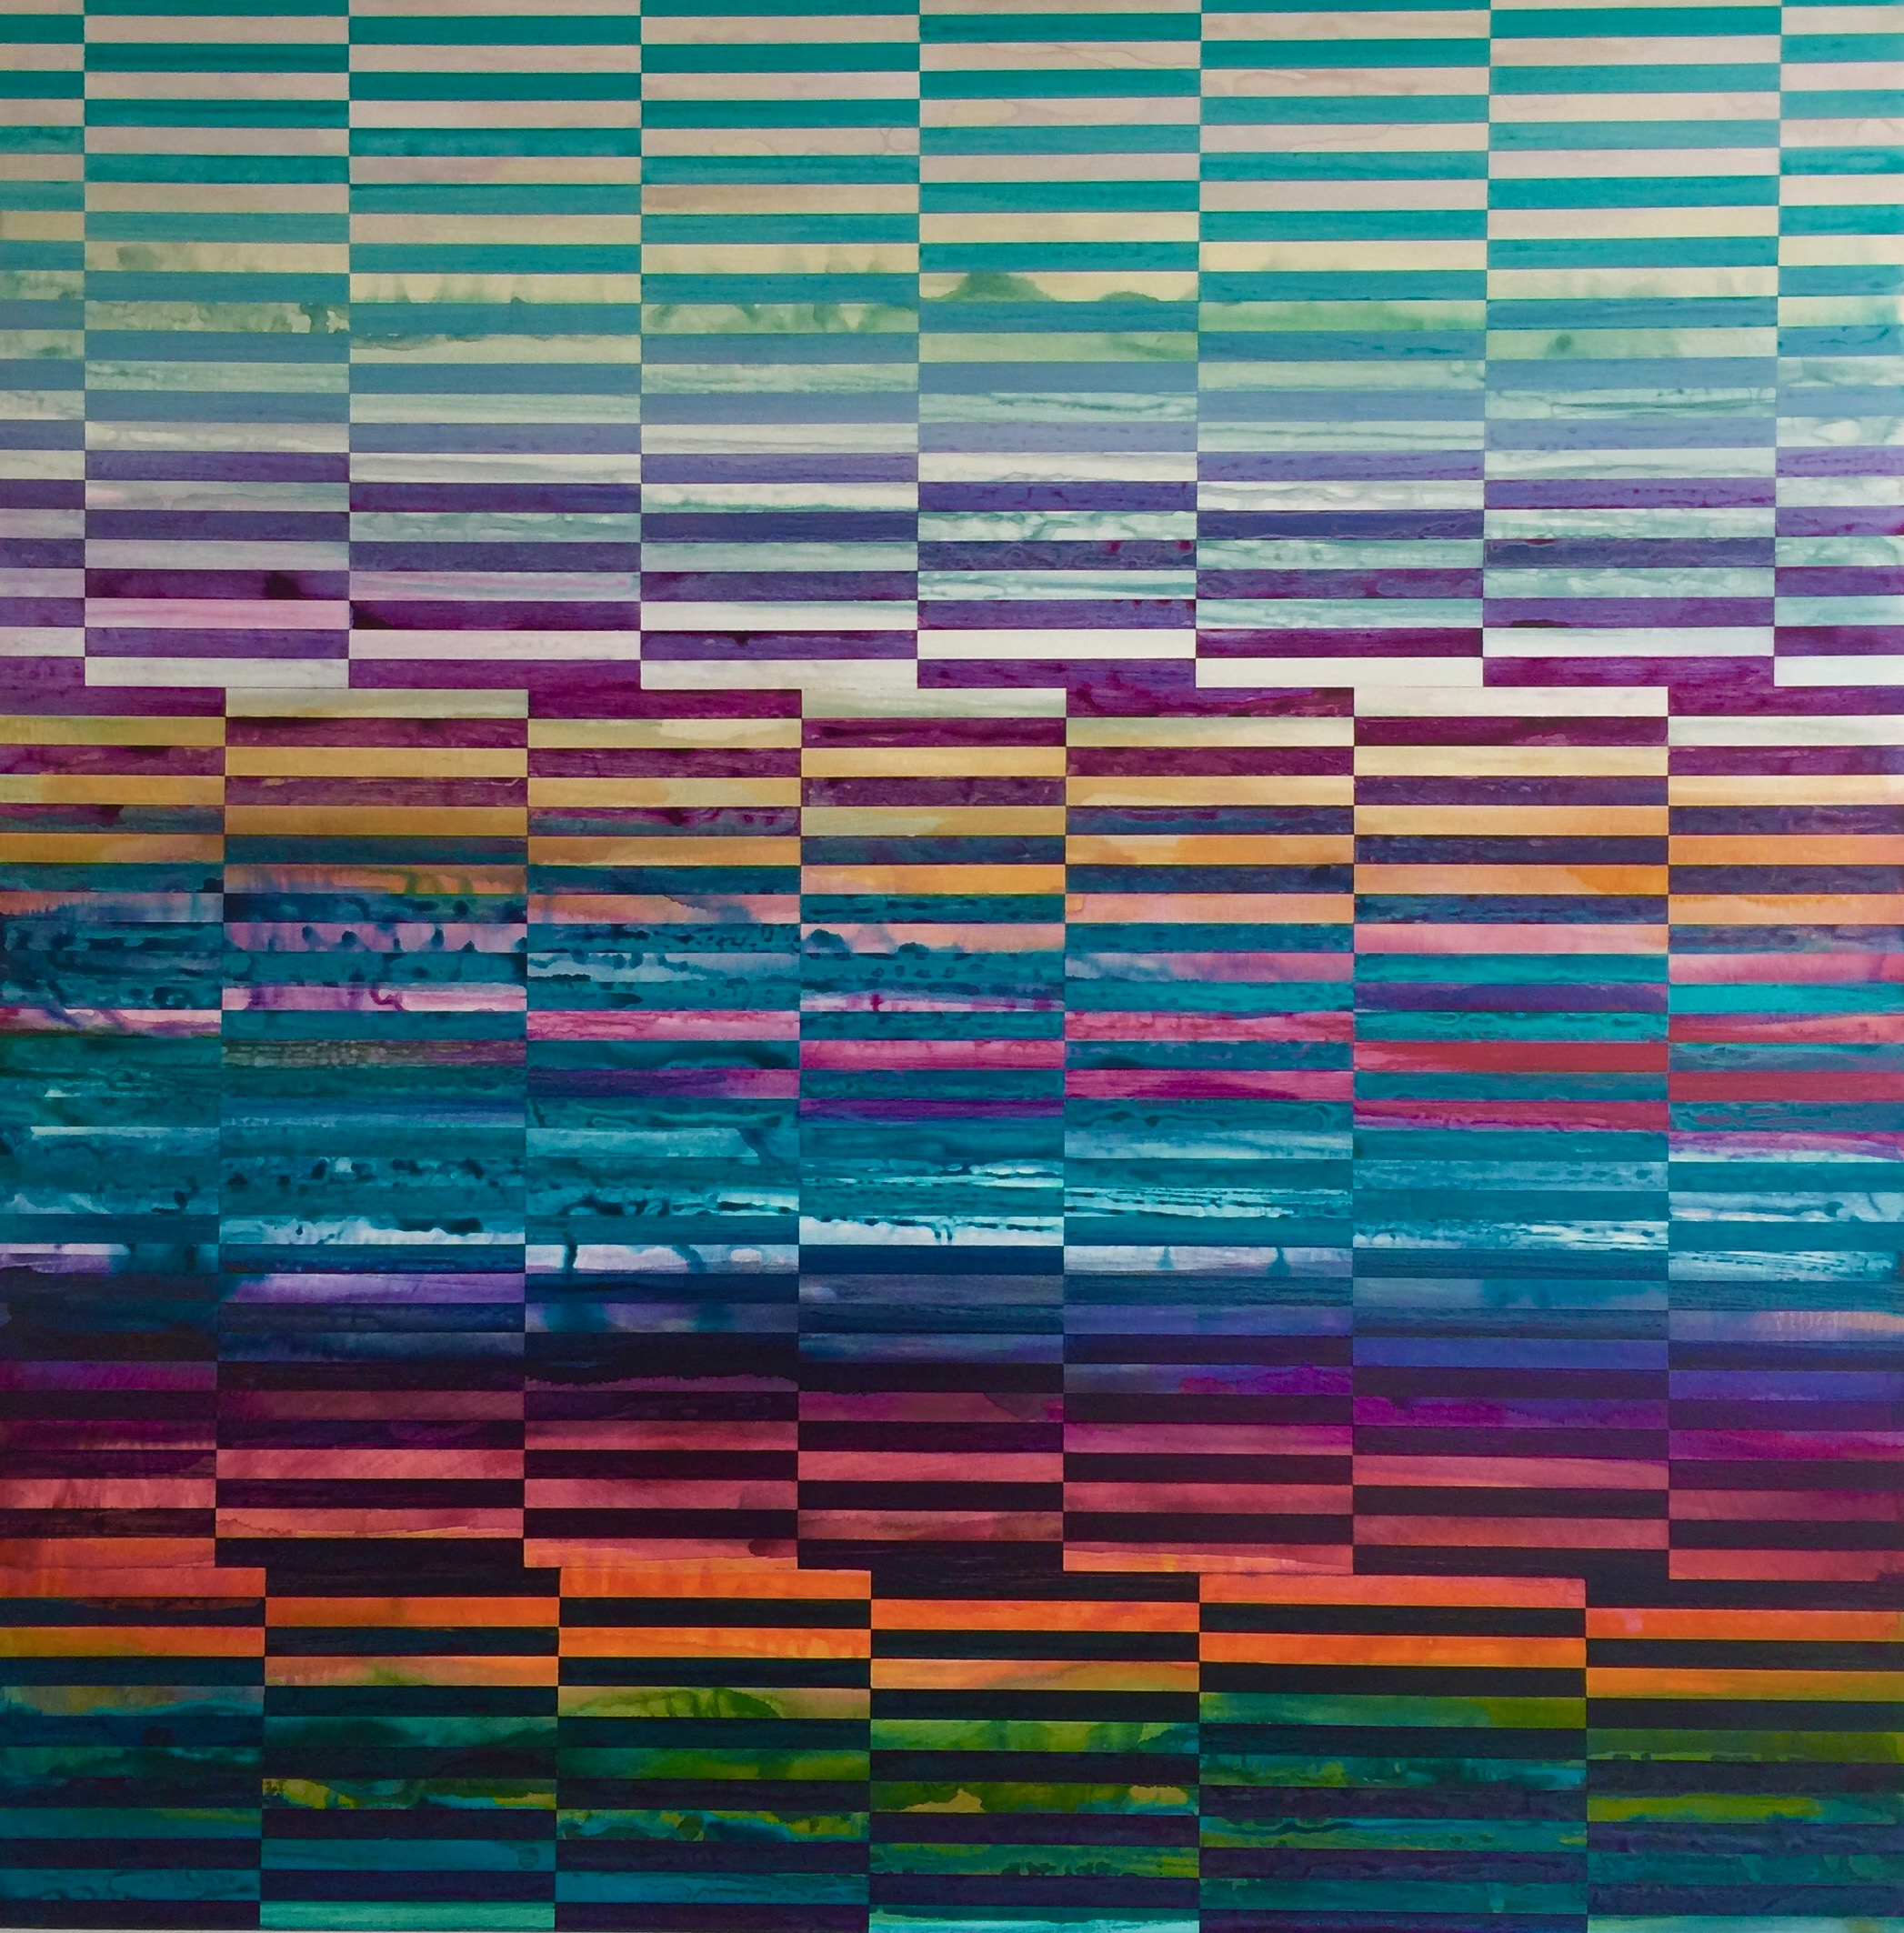 DNA Landscape No.19_48 x 48 inches_2018_2